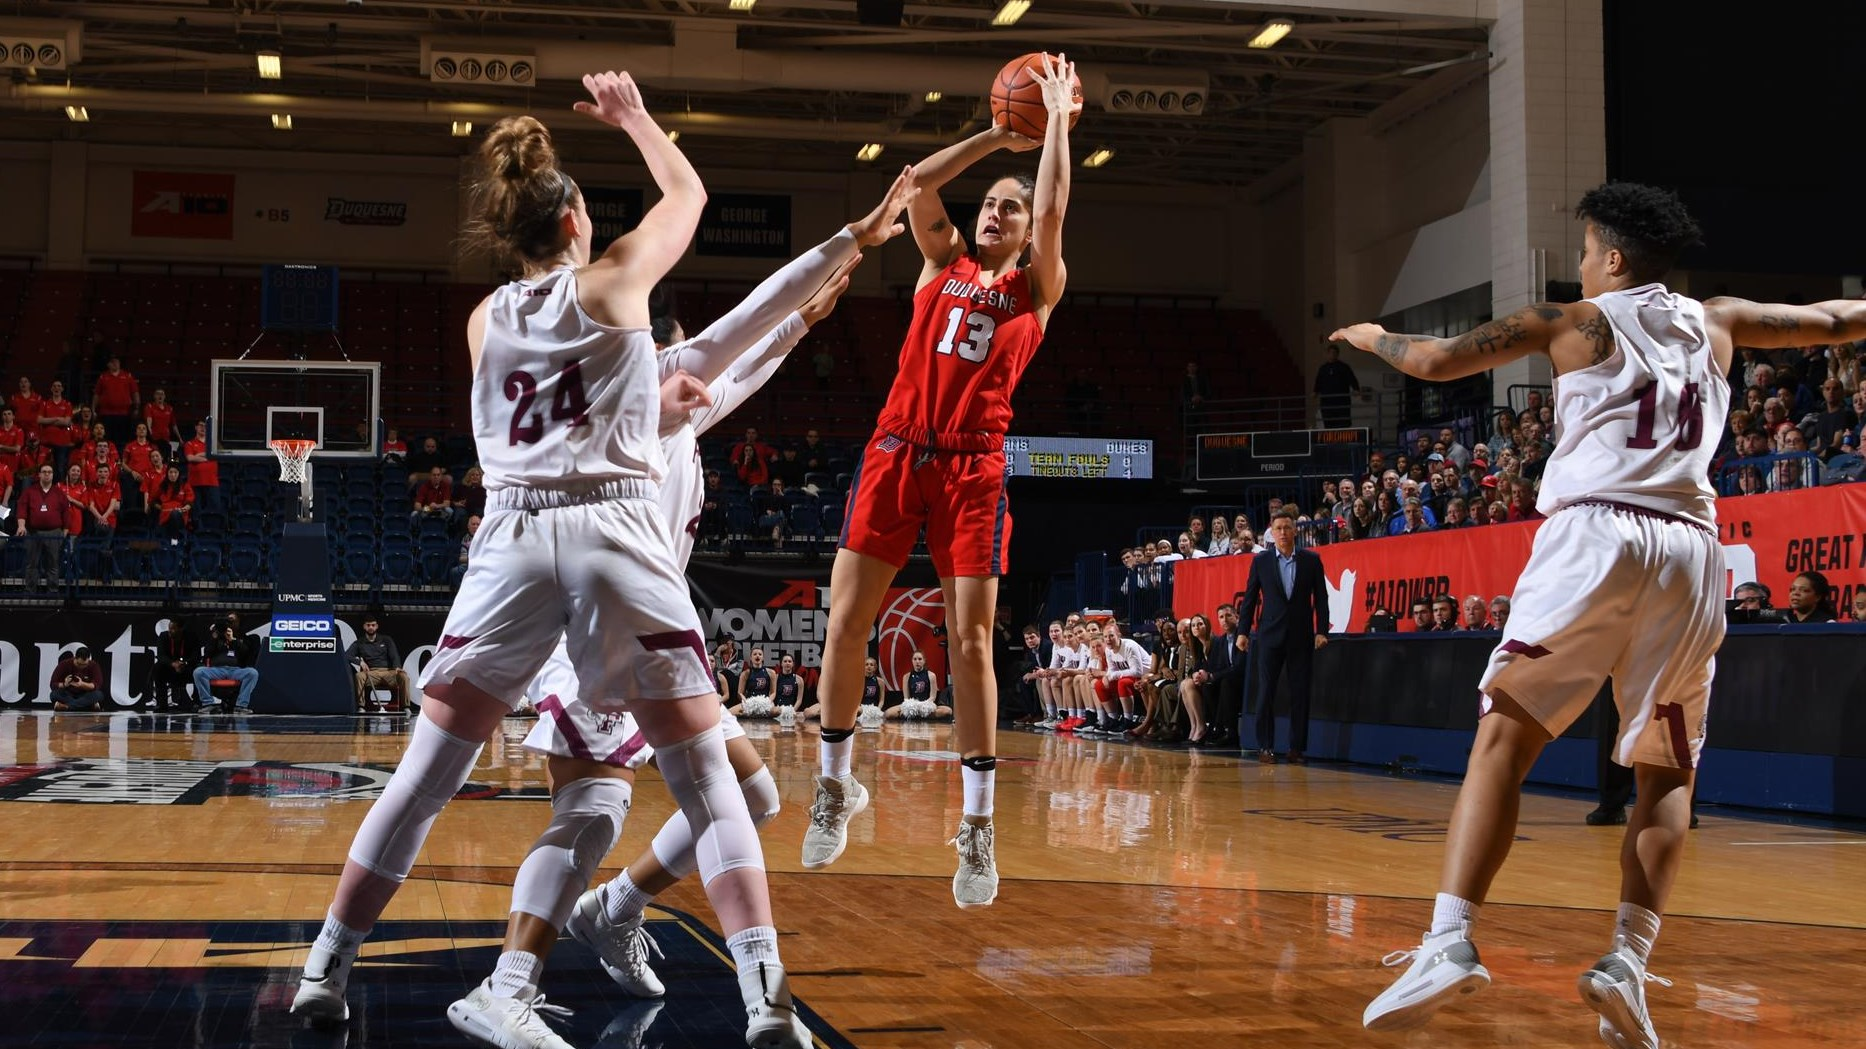 picture relating to Duke Basketball Schedule Printable known as Womens Basketball - Duquesne College Sports activities